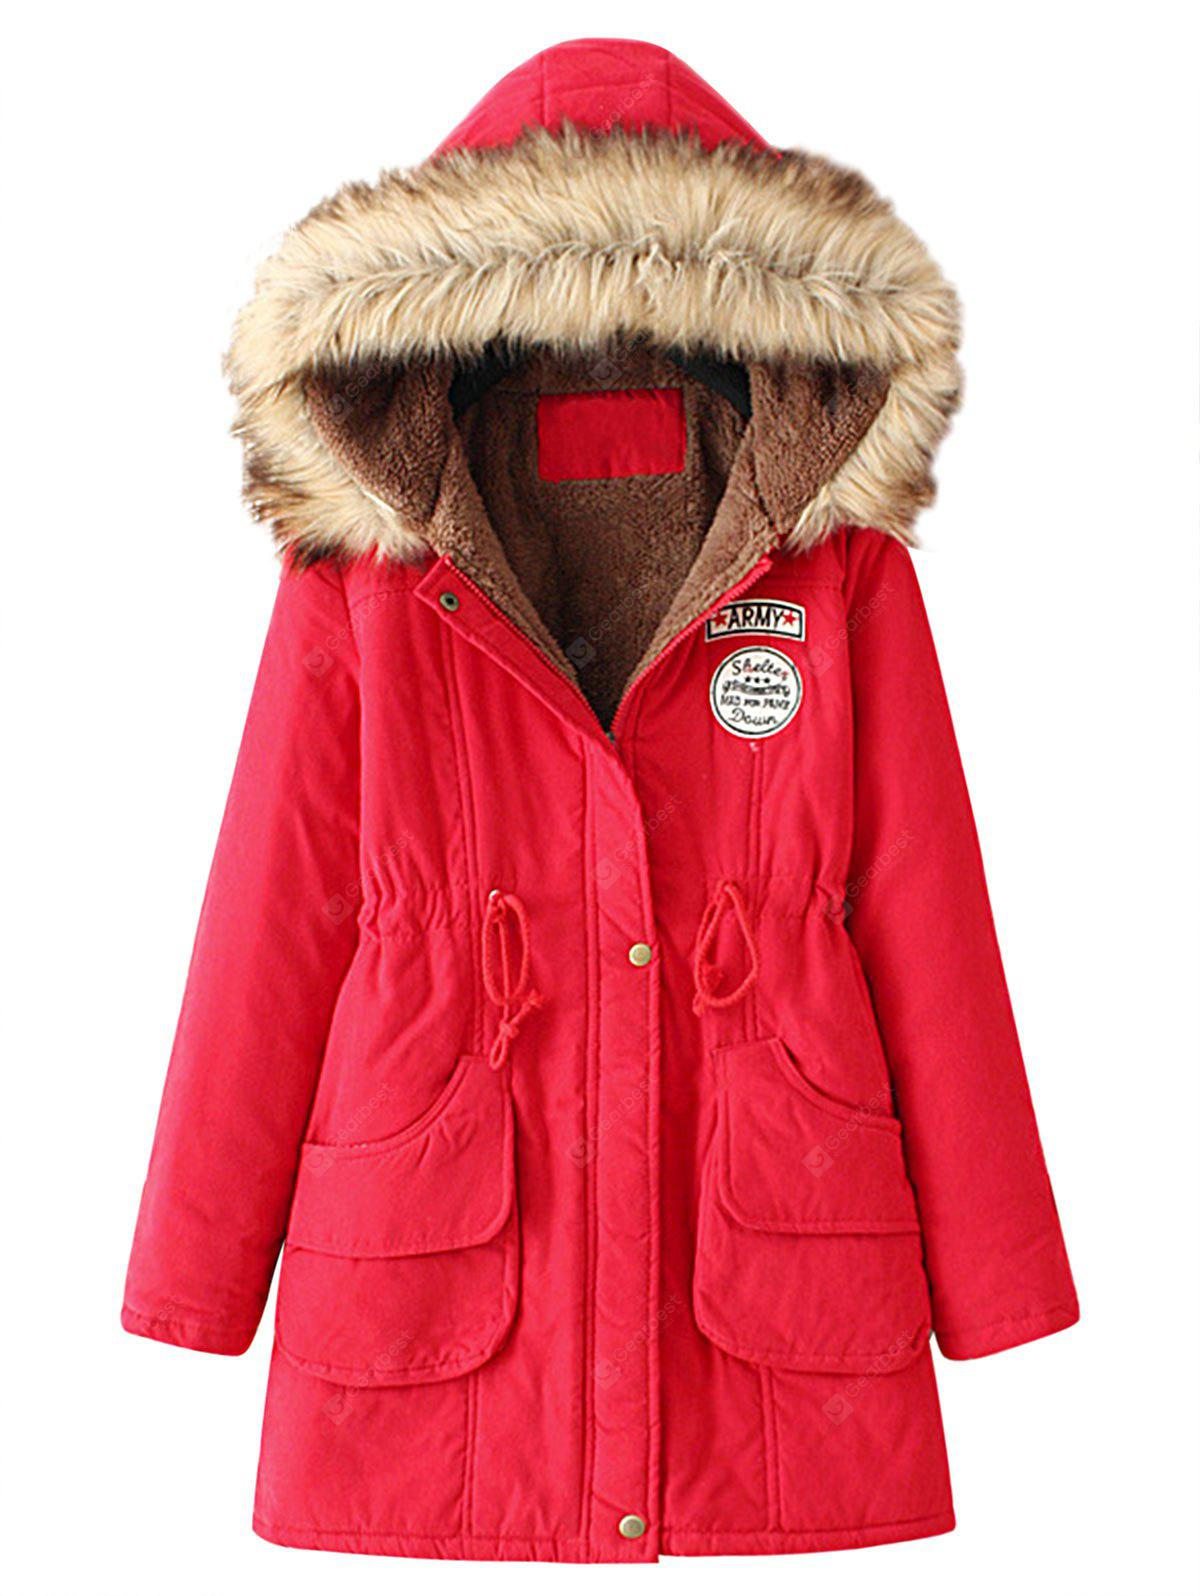 Fur Collar Snap Button Parka Coat